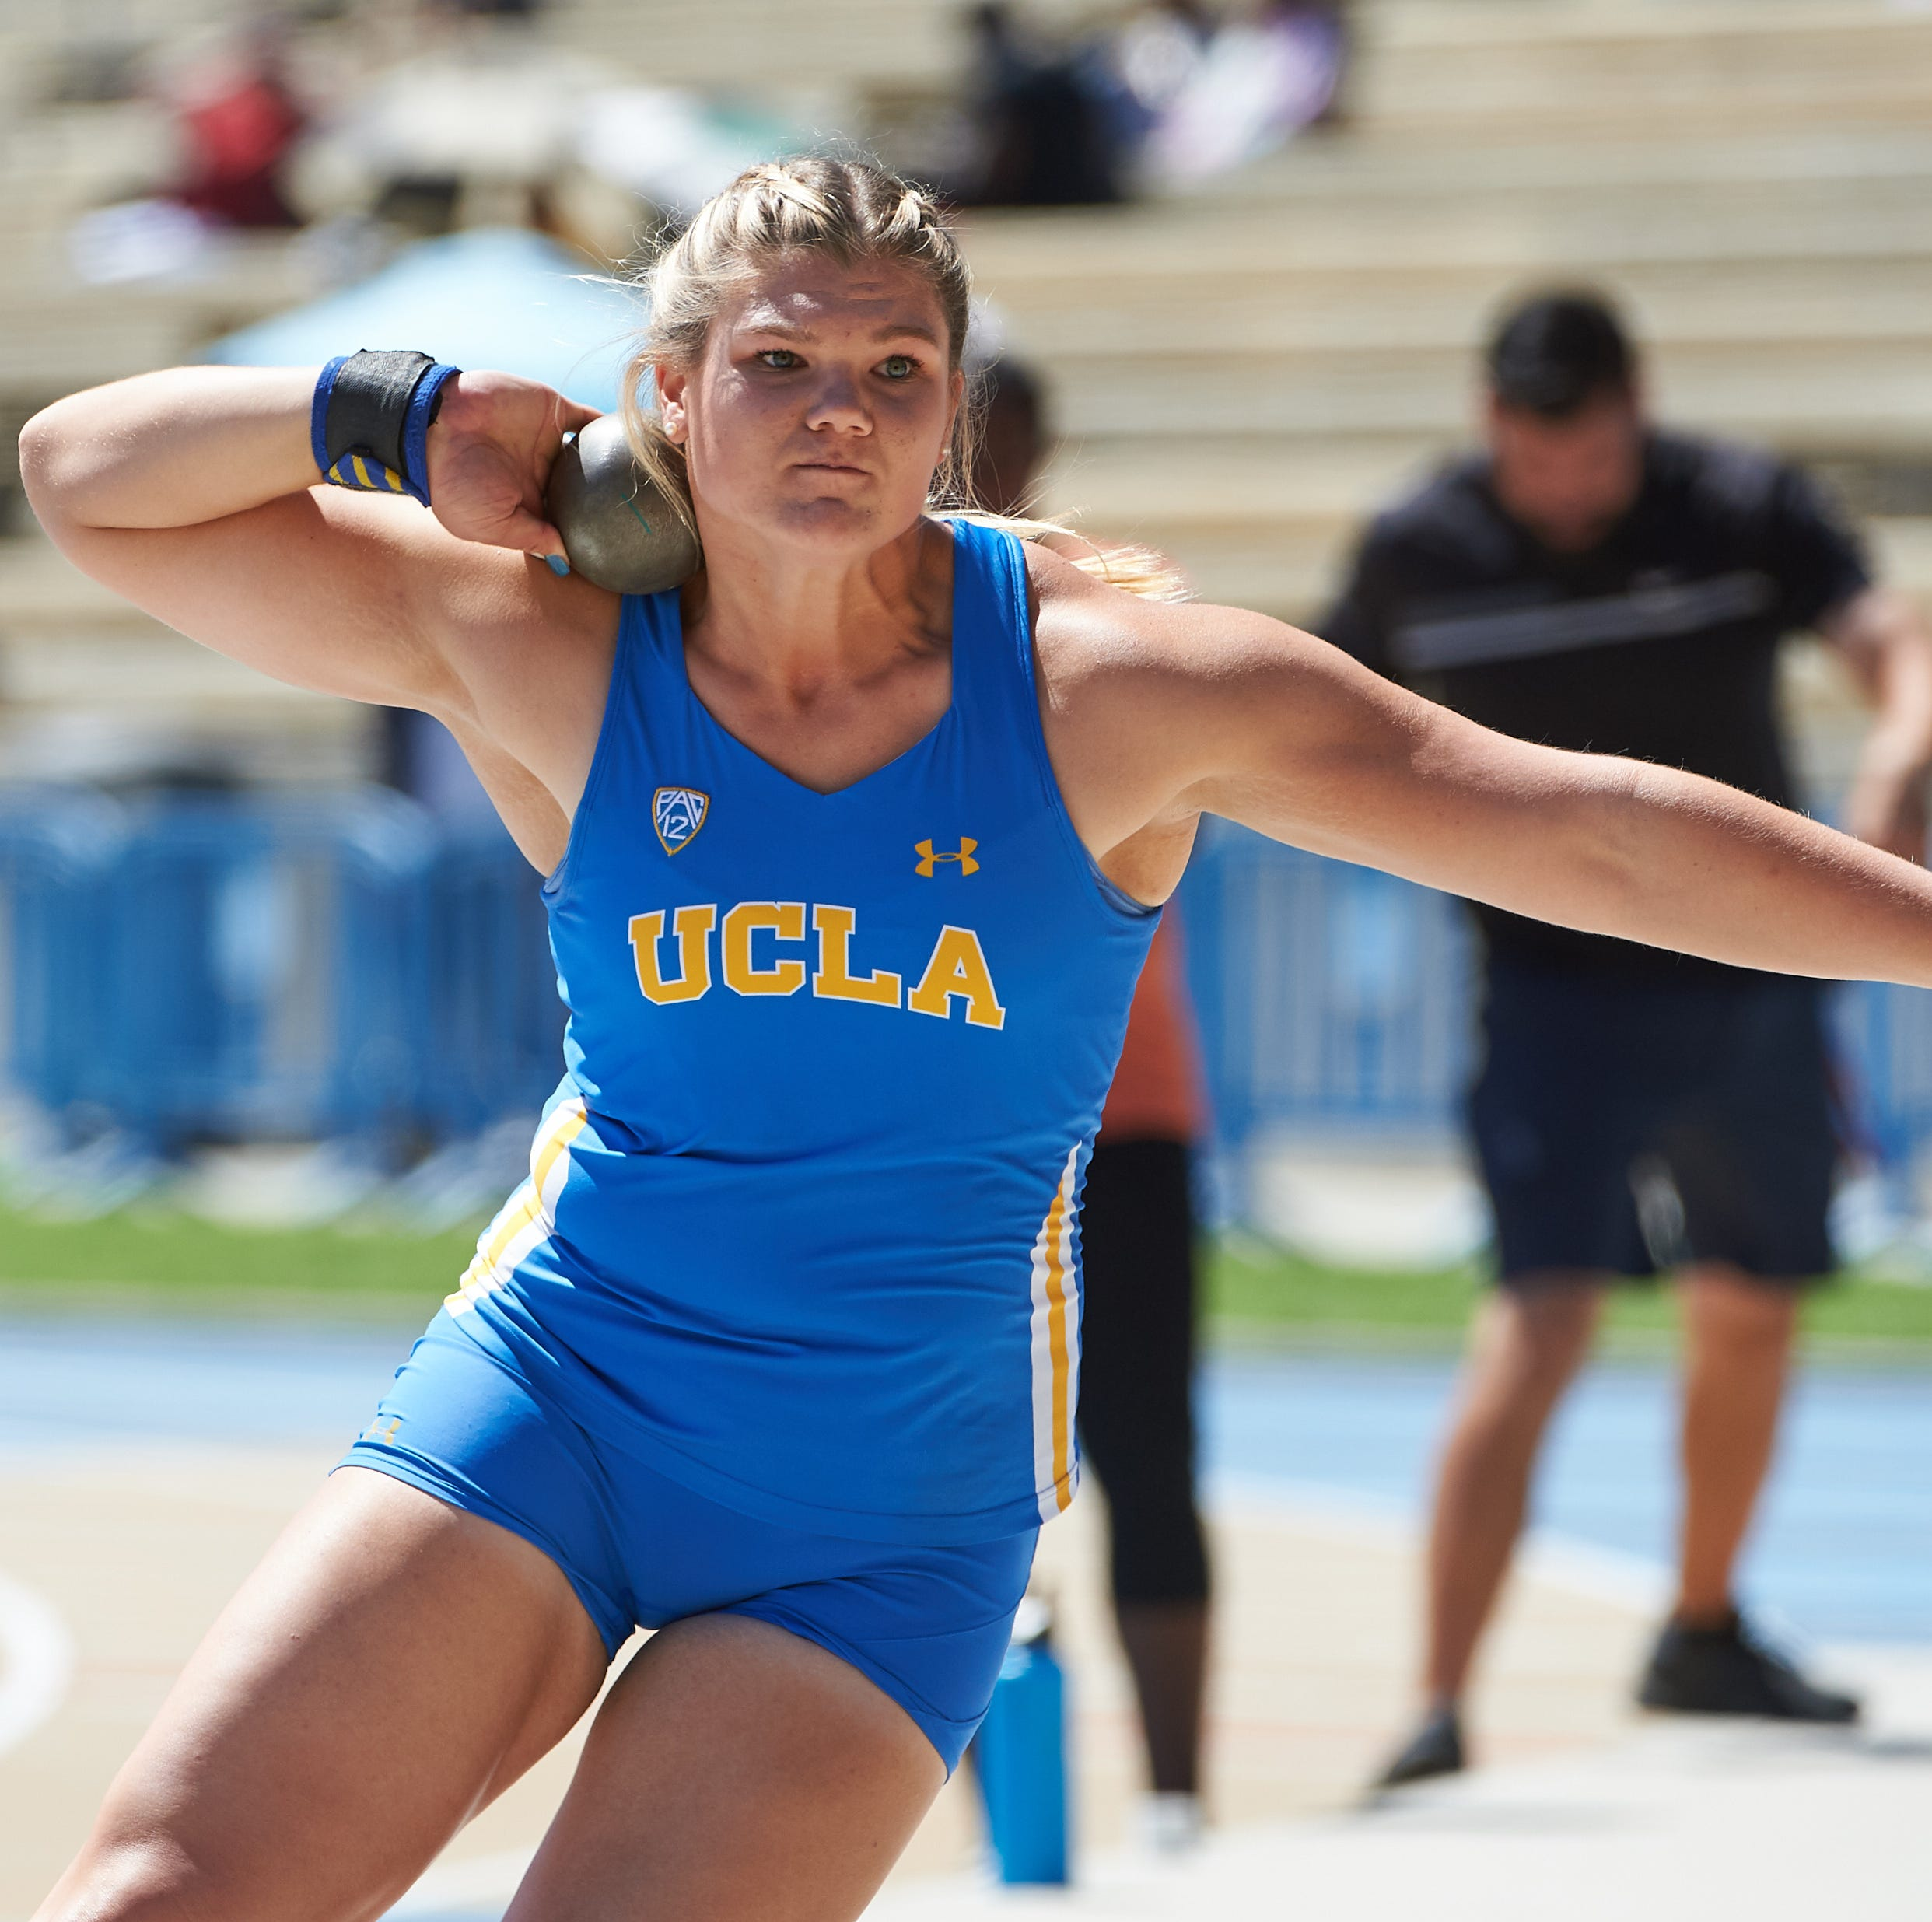 Alyssa Wilson breaking track and field records at UCLA